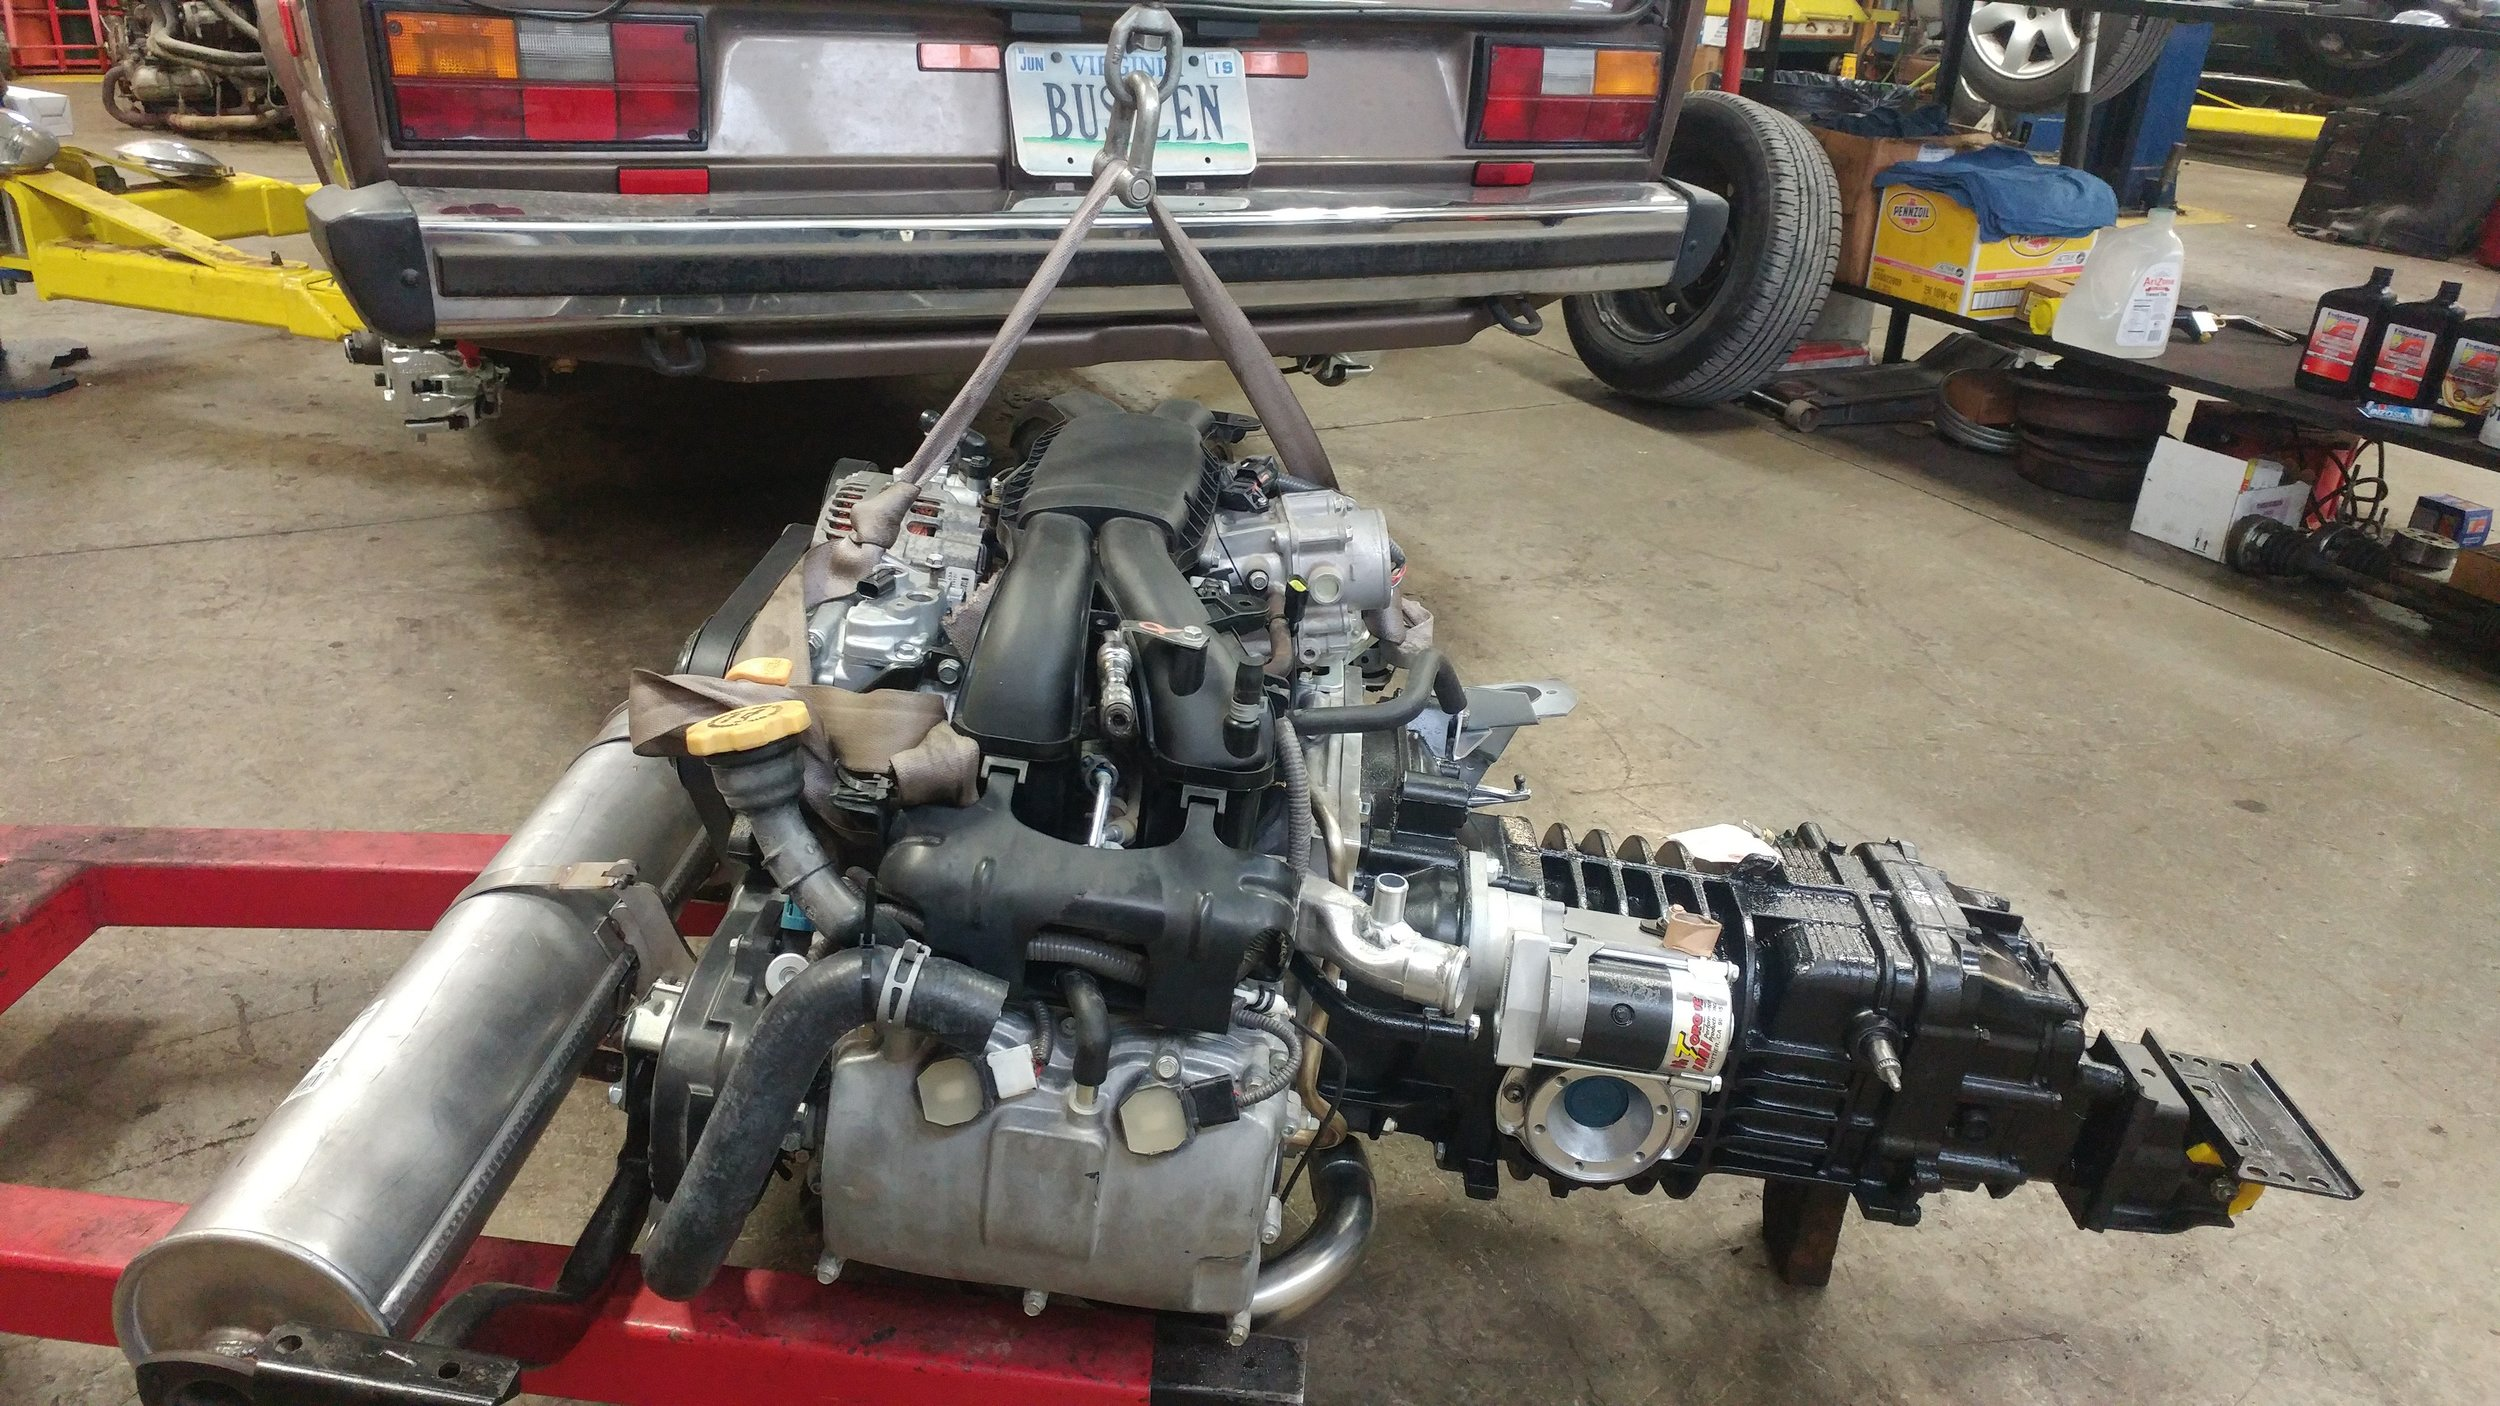 Tom's 40 mile (yes, four-zero) engine mated to his regeared transmission ready to go in.